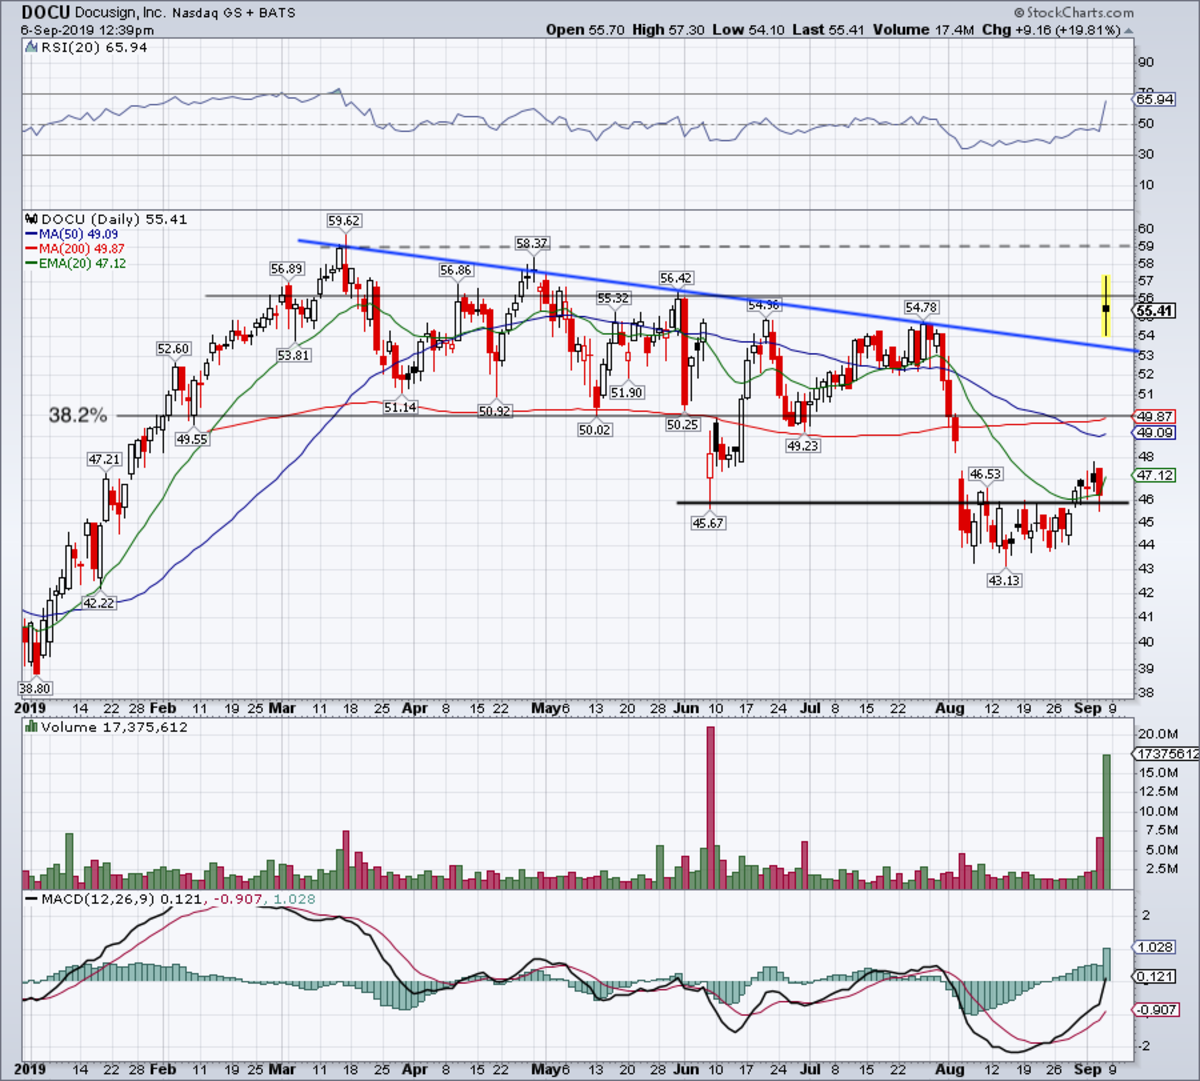 Daily chart of DocuSign stock.